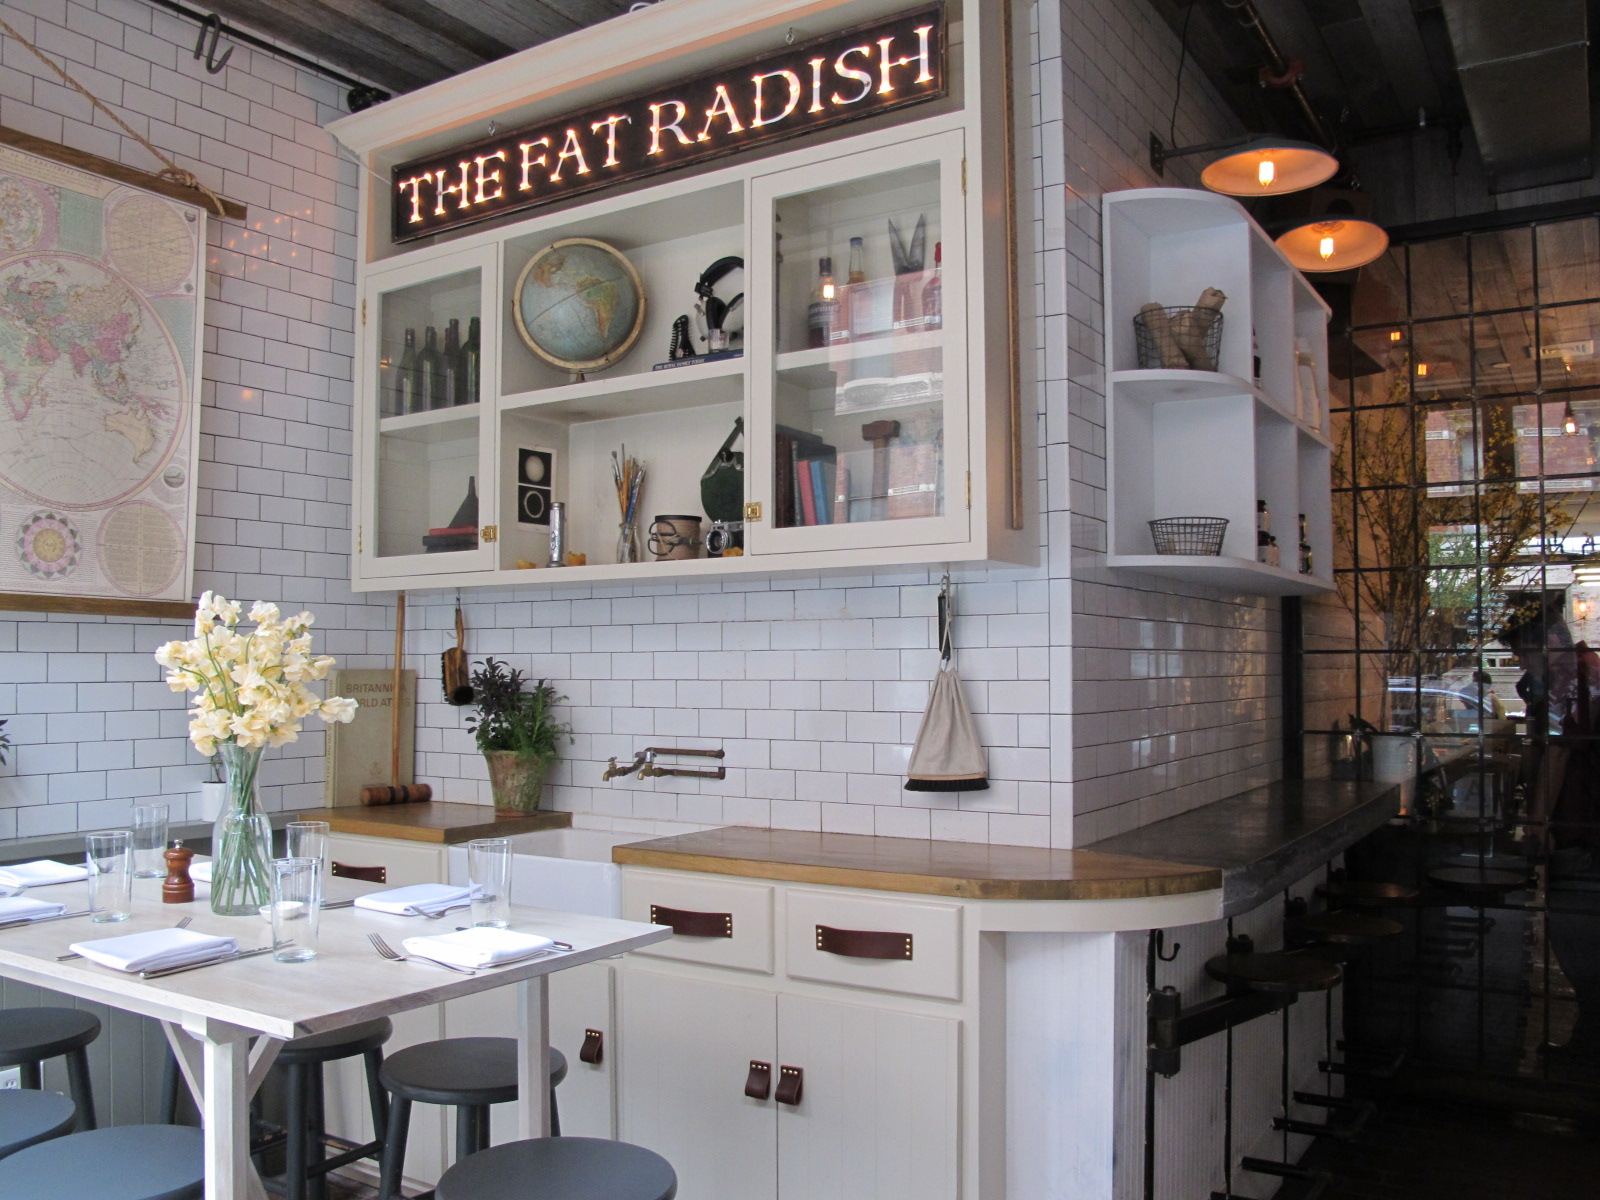 The Fat Radish Front Redesign Katesdougherty